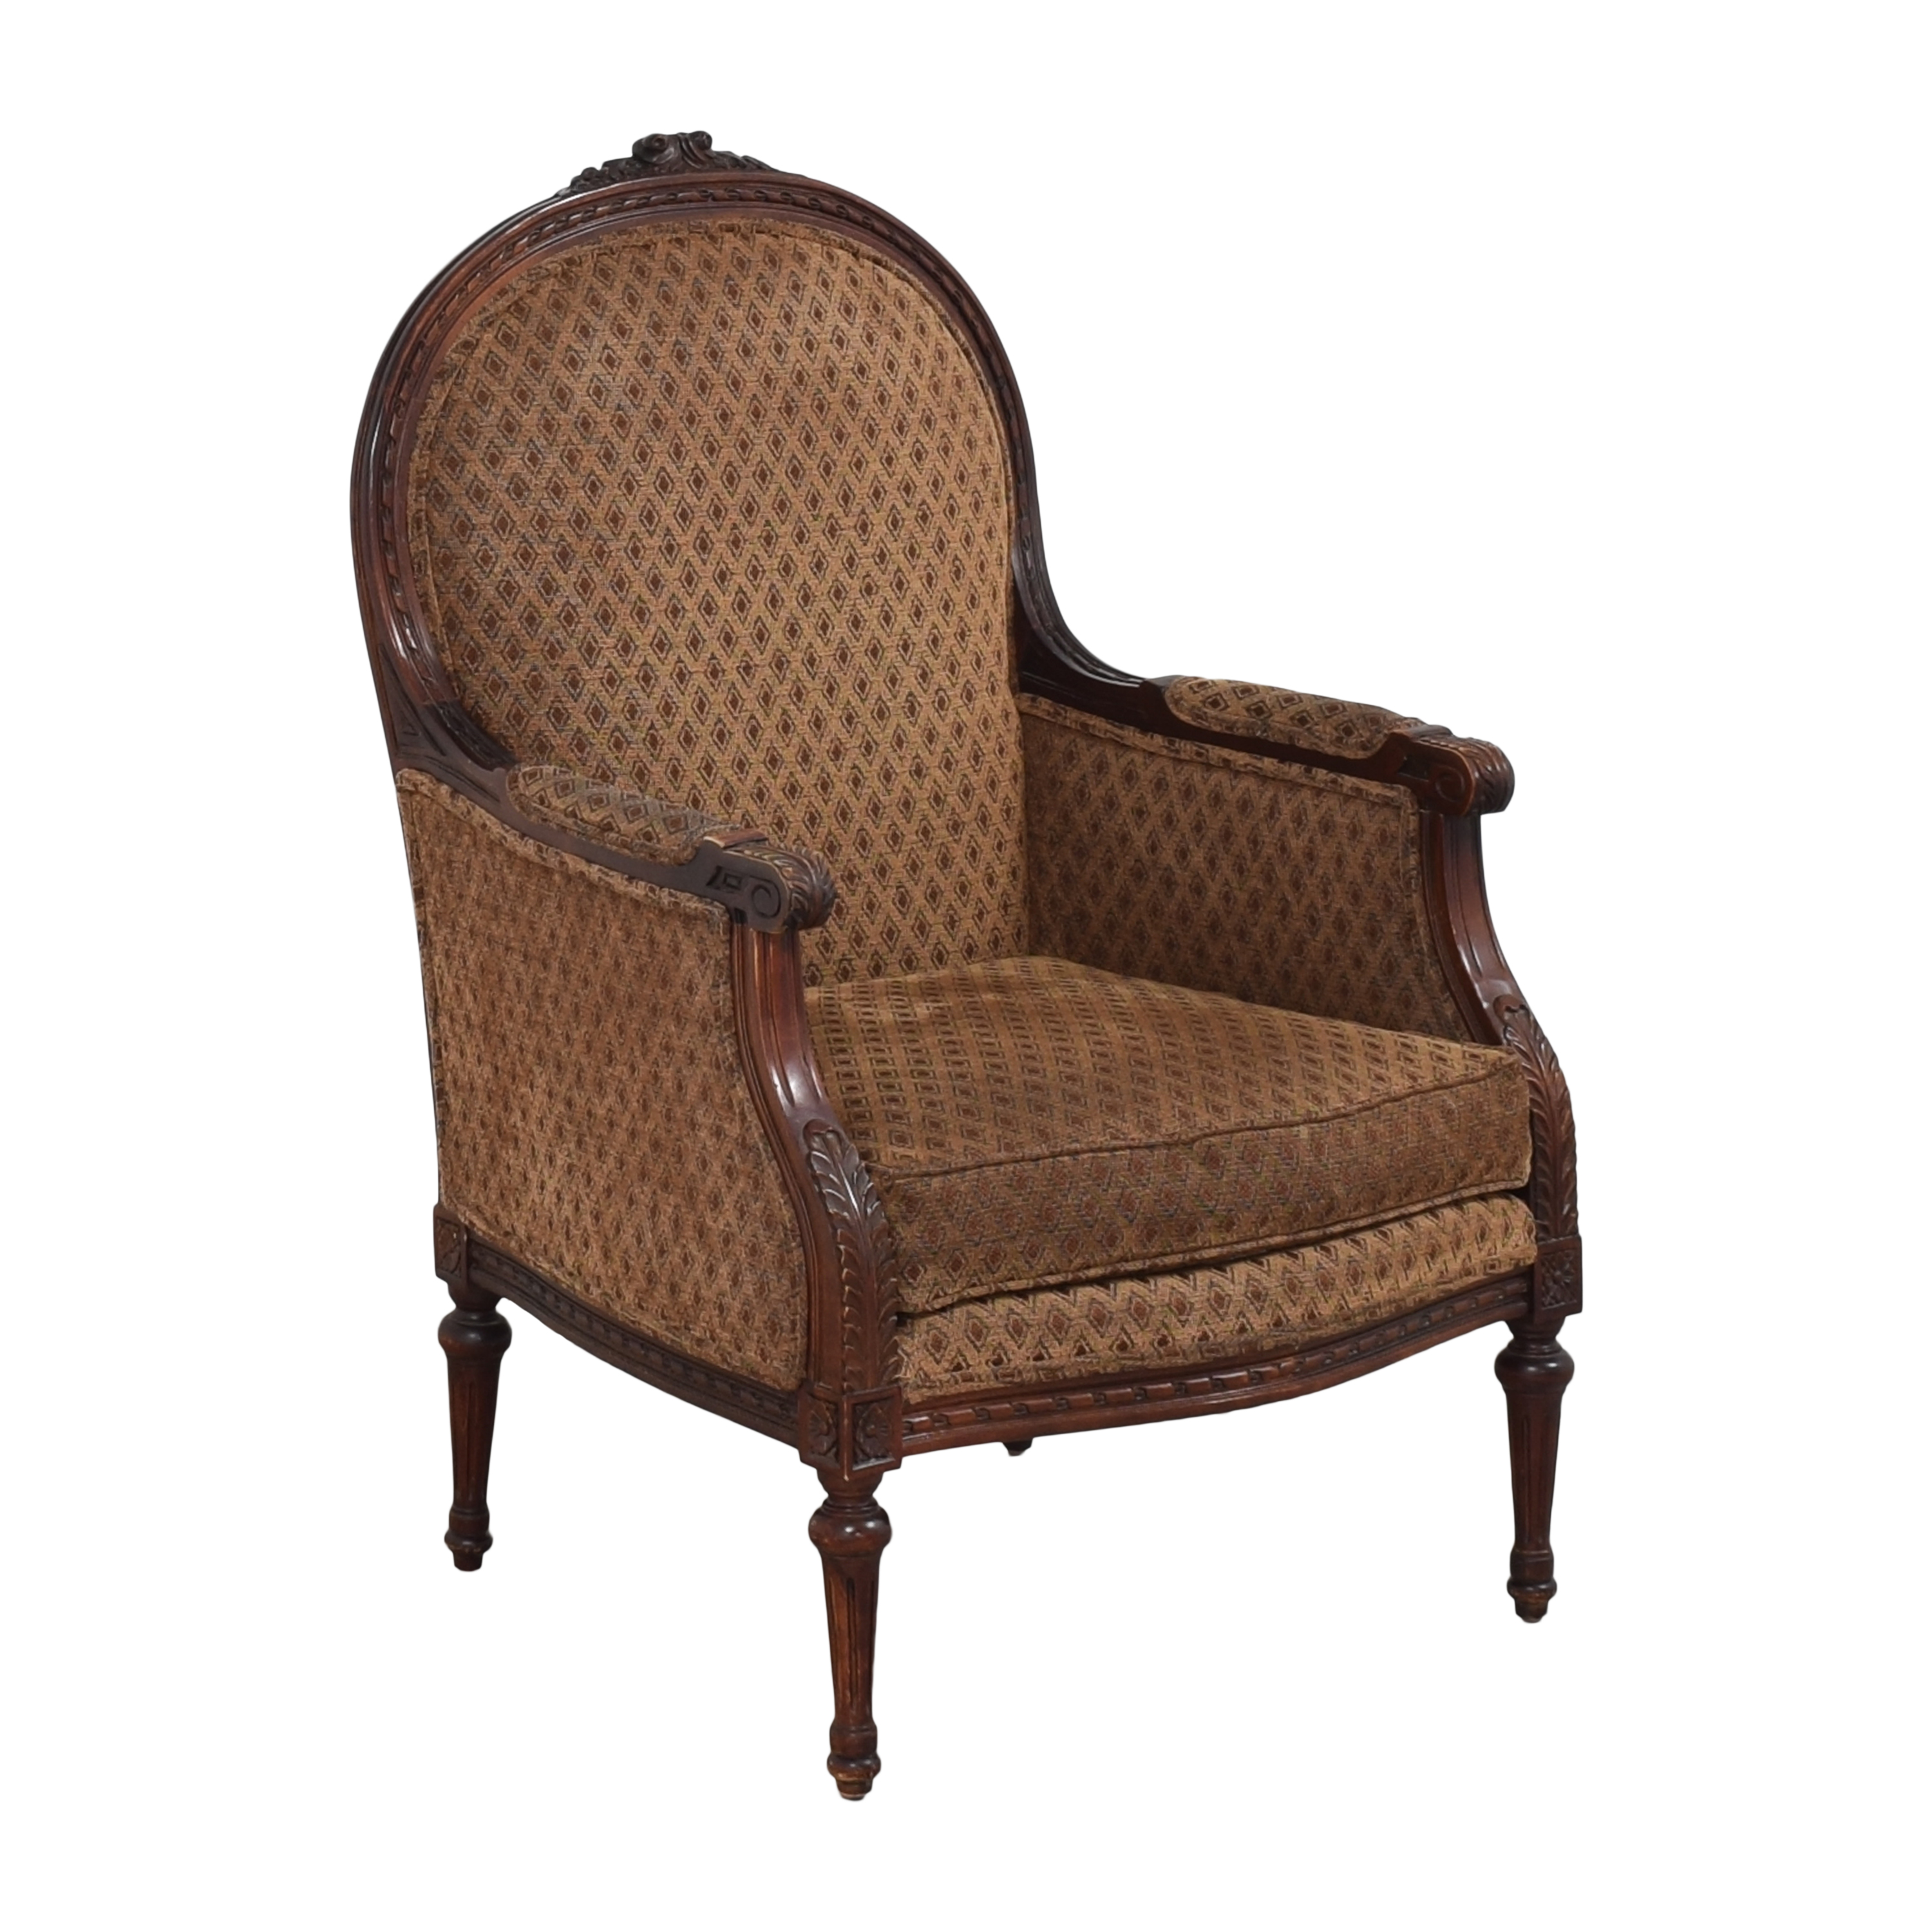 Thomasville Thomasville Upholstered Chair dimensions